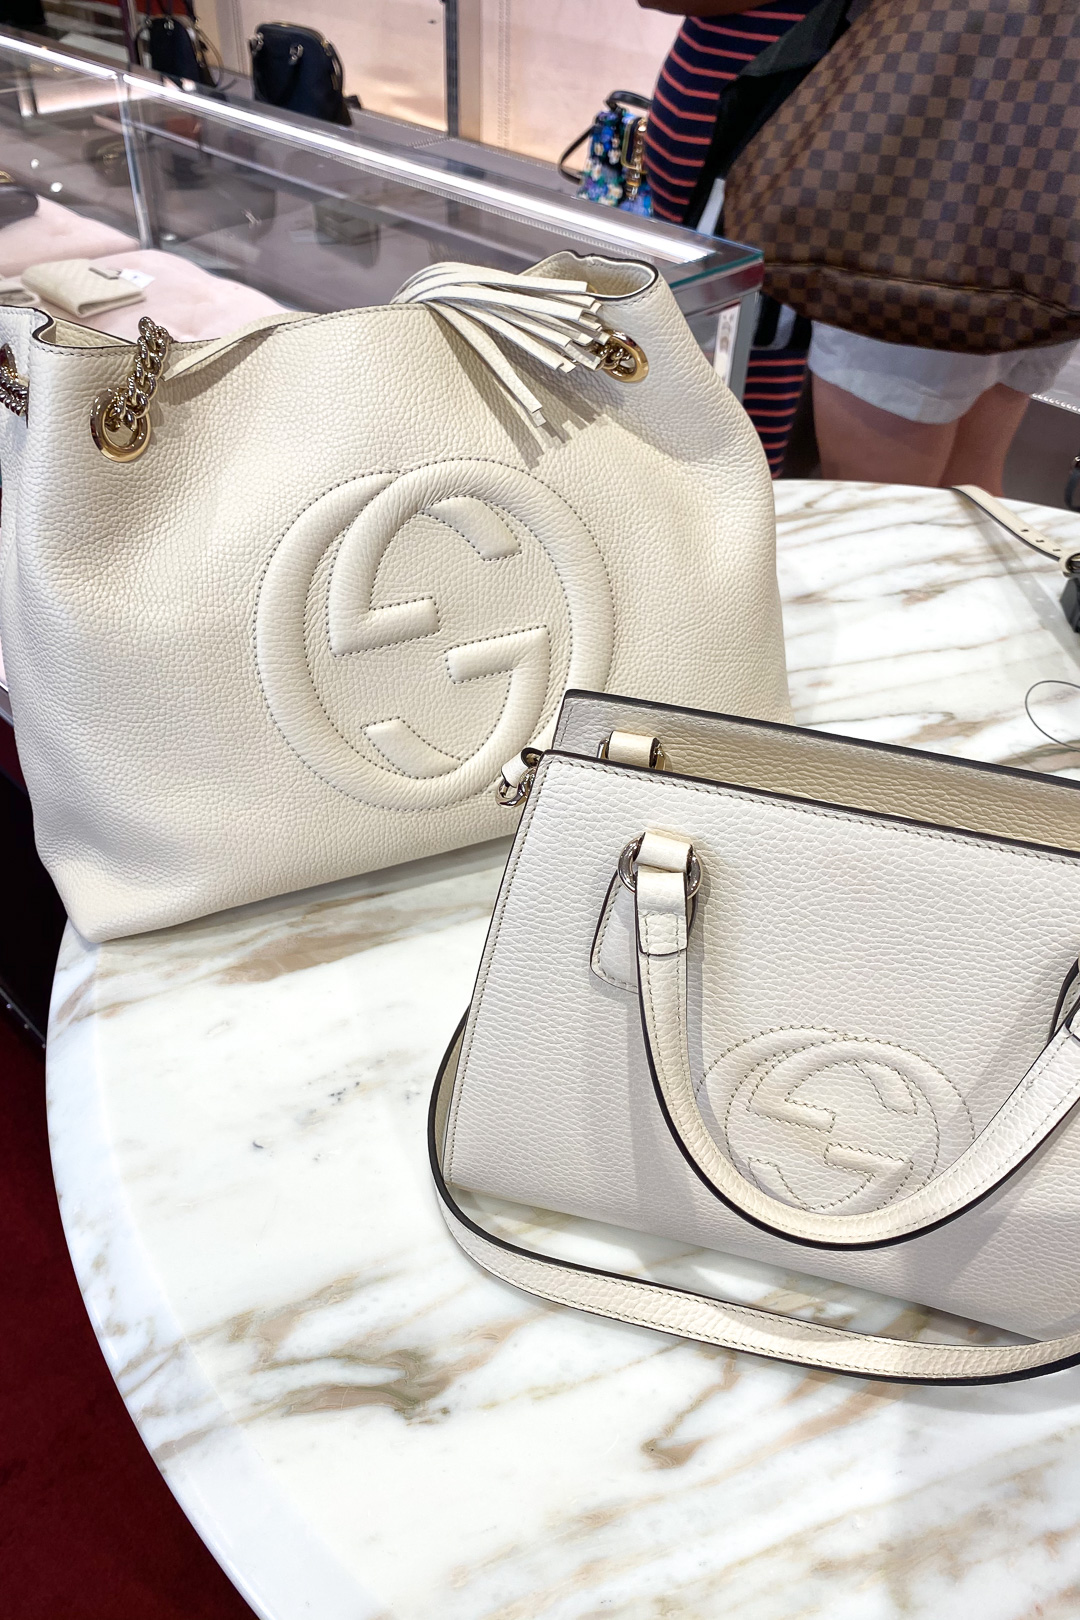 Gucci Outlet Purses